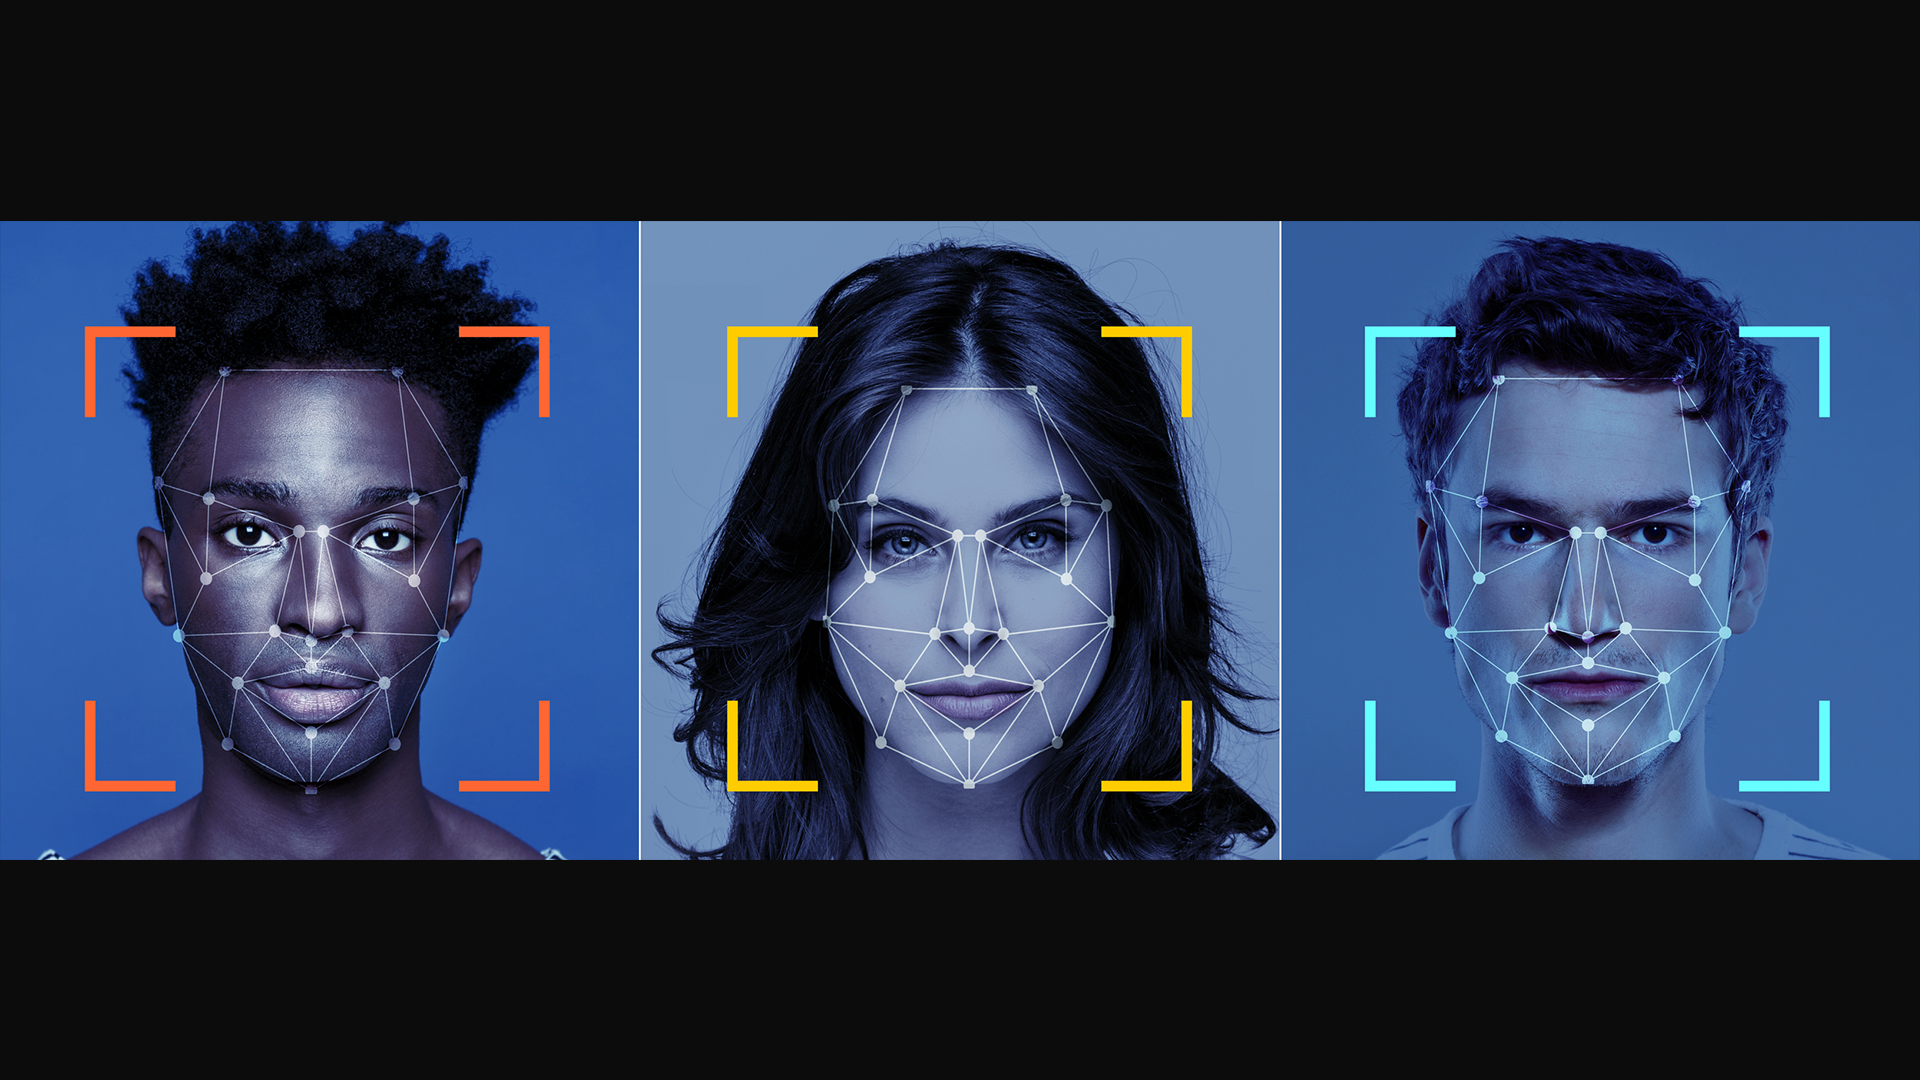 Israeli facial recognition tech reduces chance of human bias